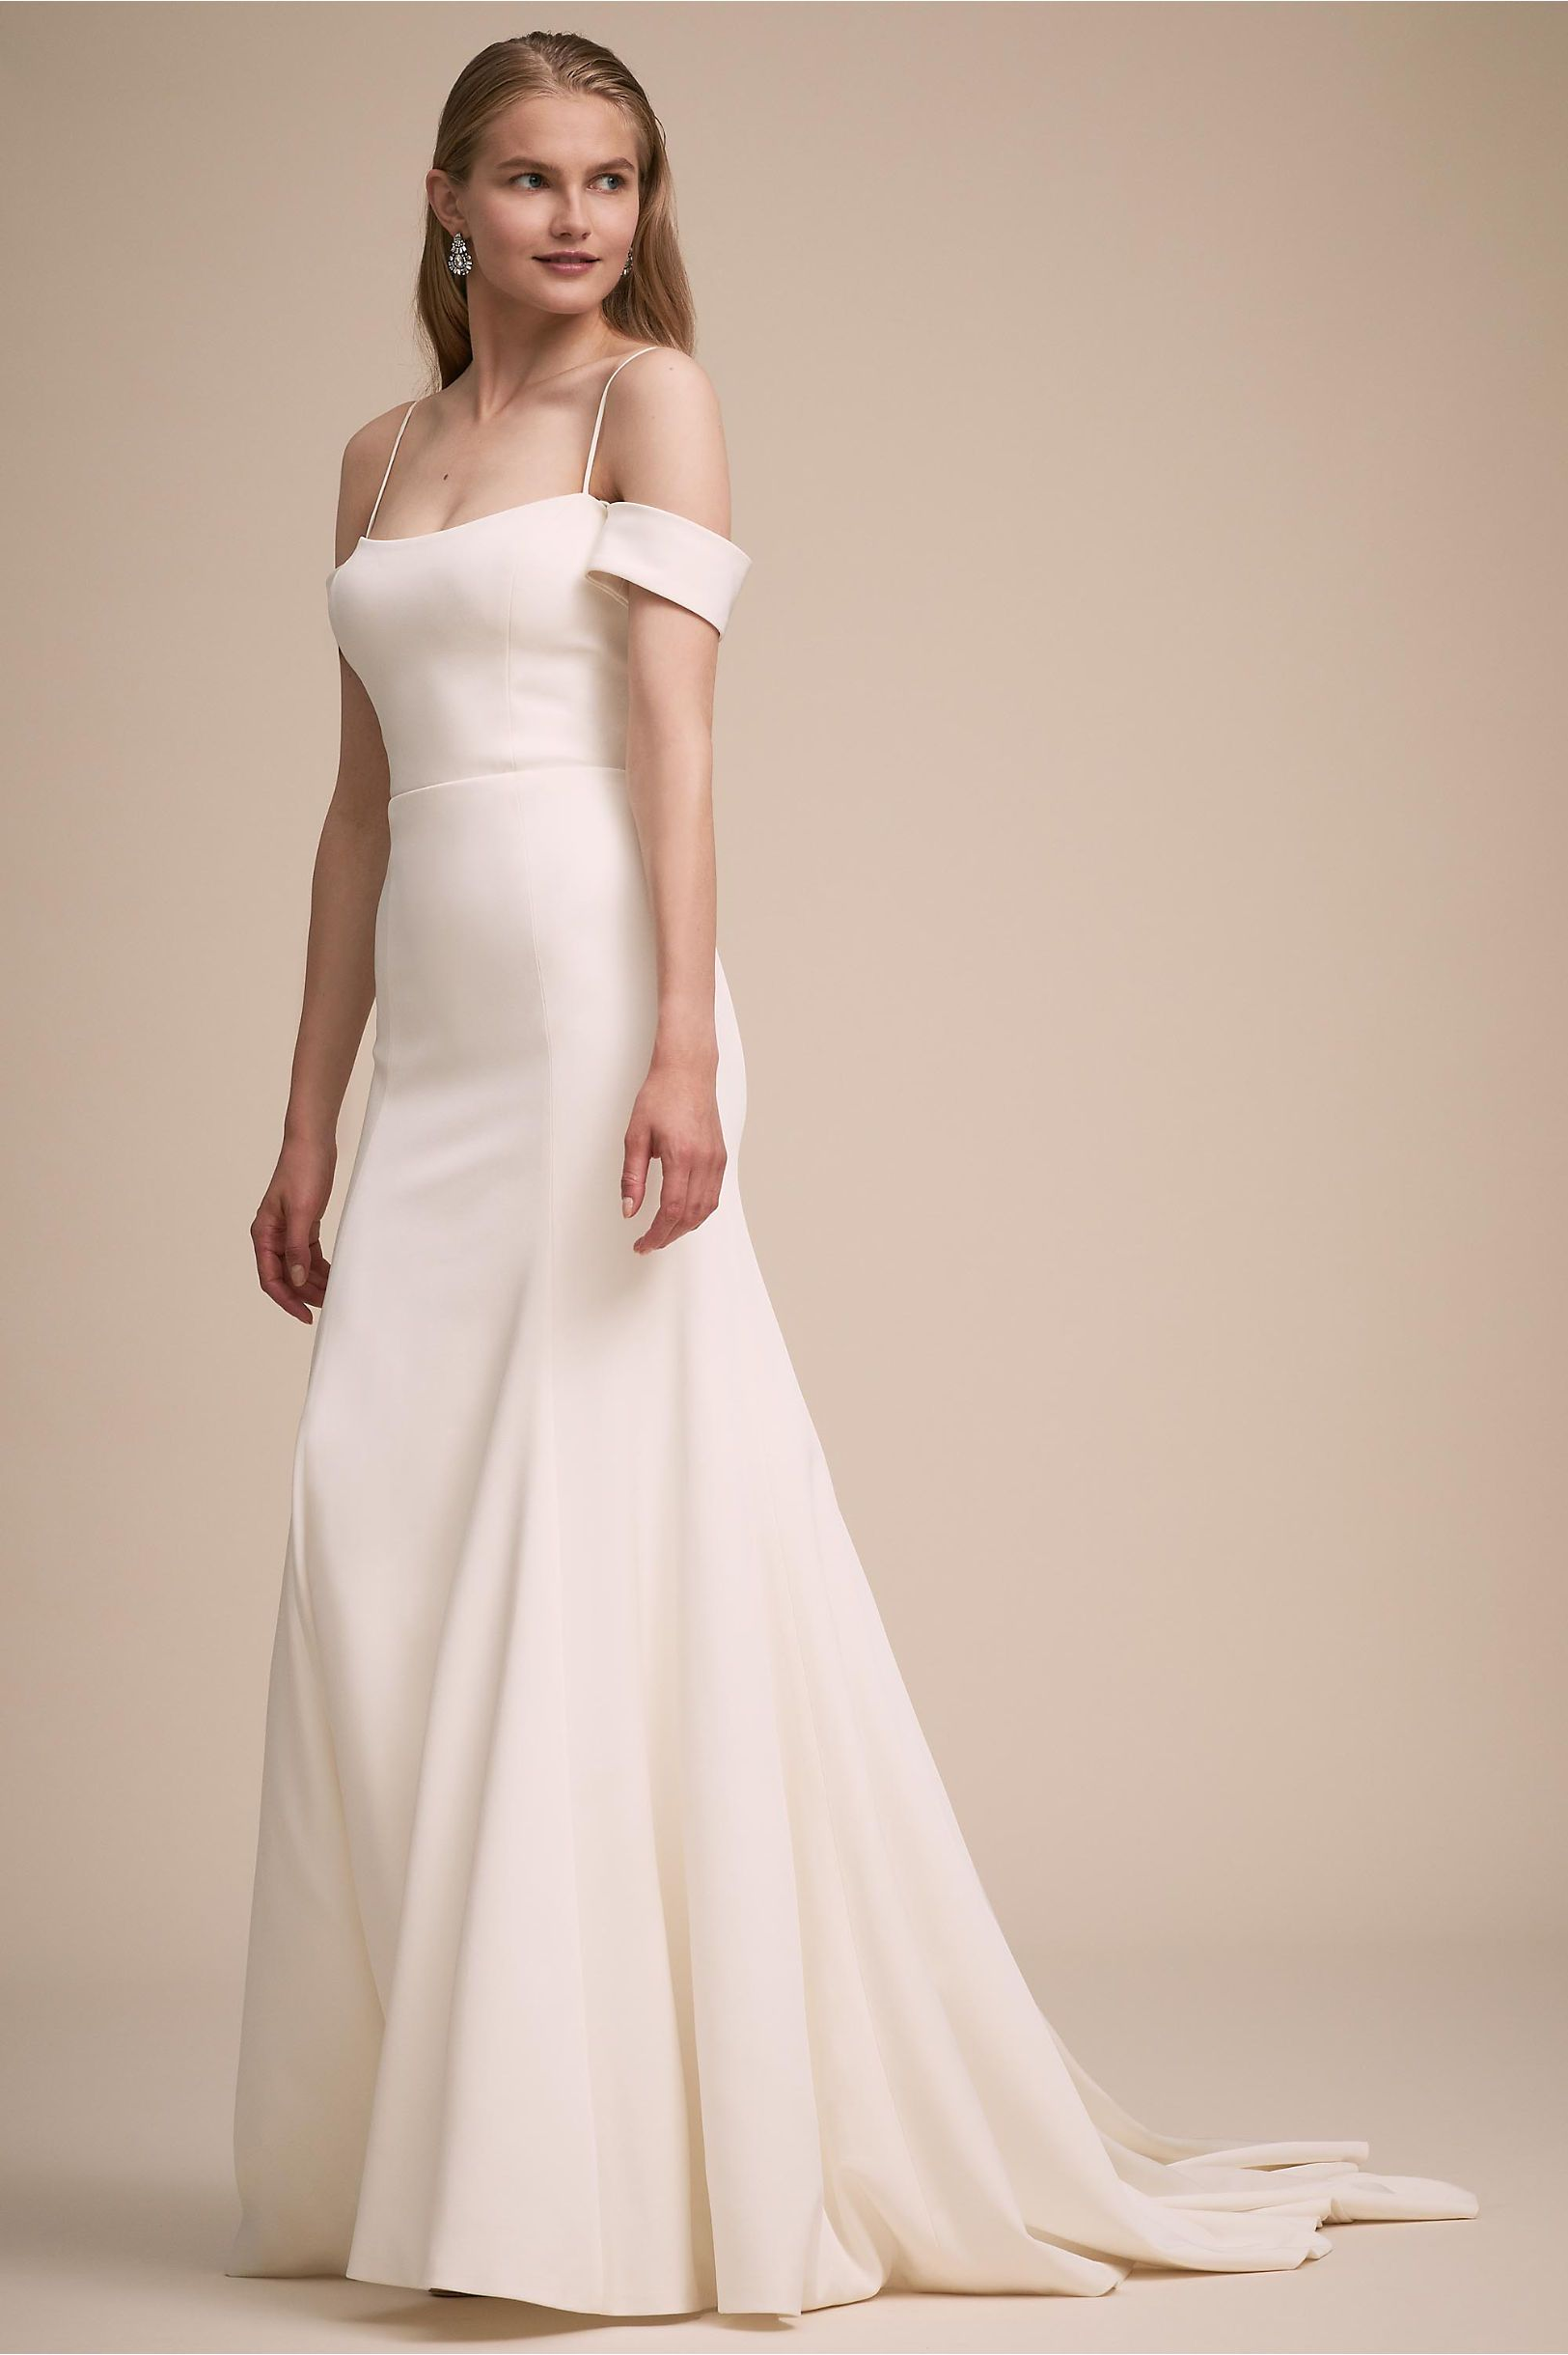 ec9e3d3efb95 BHLDN's Jenny Yoo Montrose Gown in Ivory in 2019 | Products ...